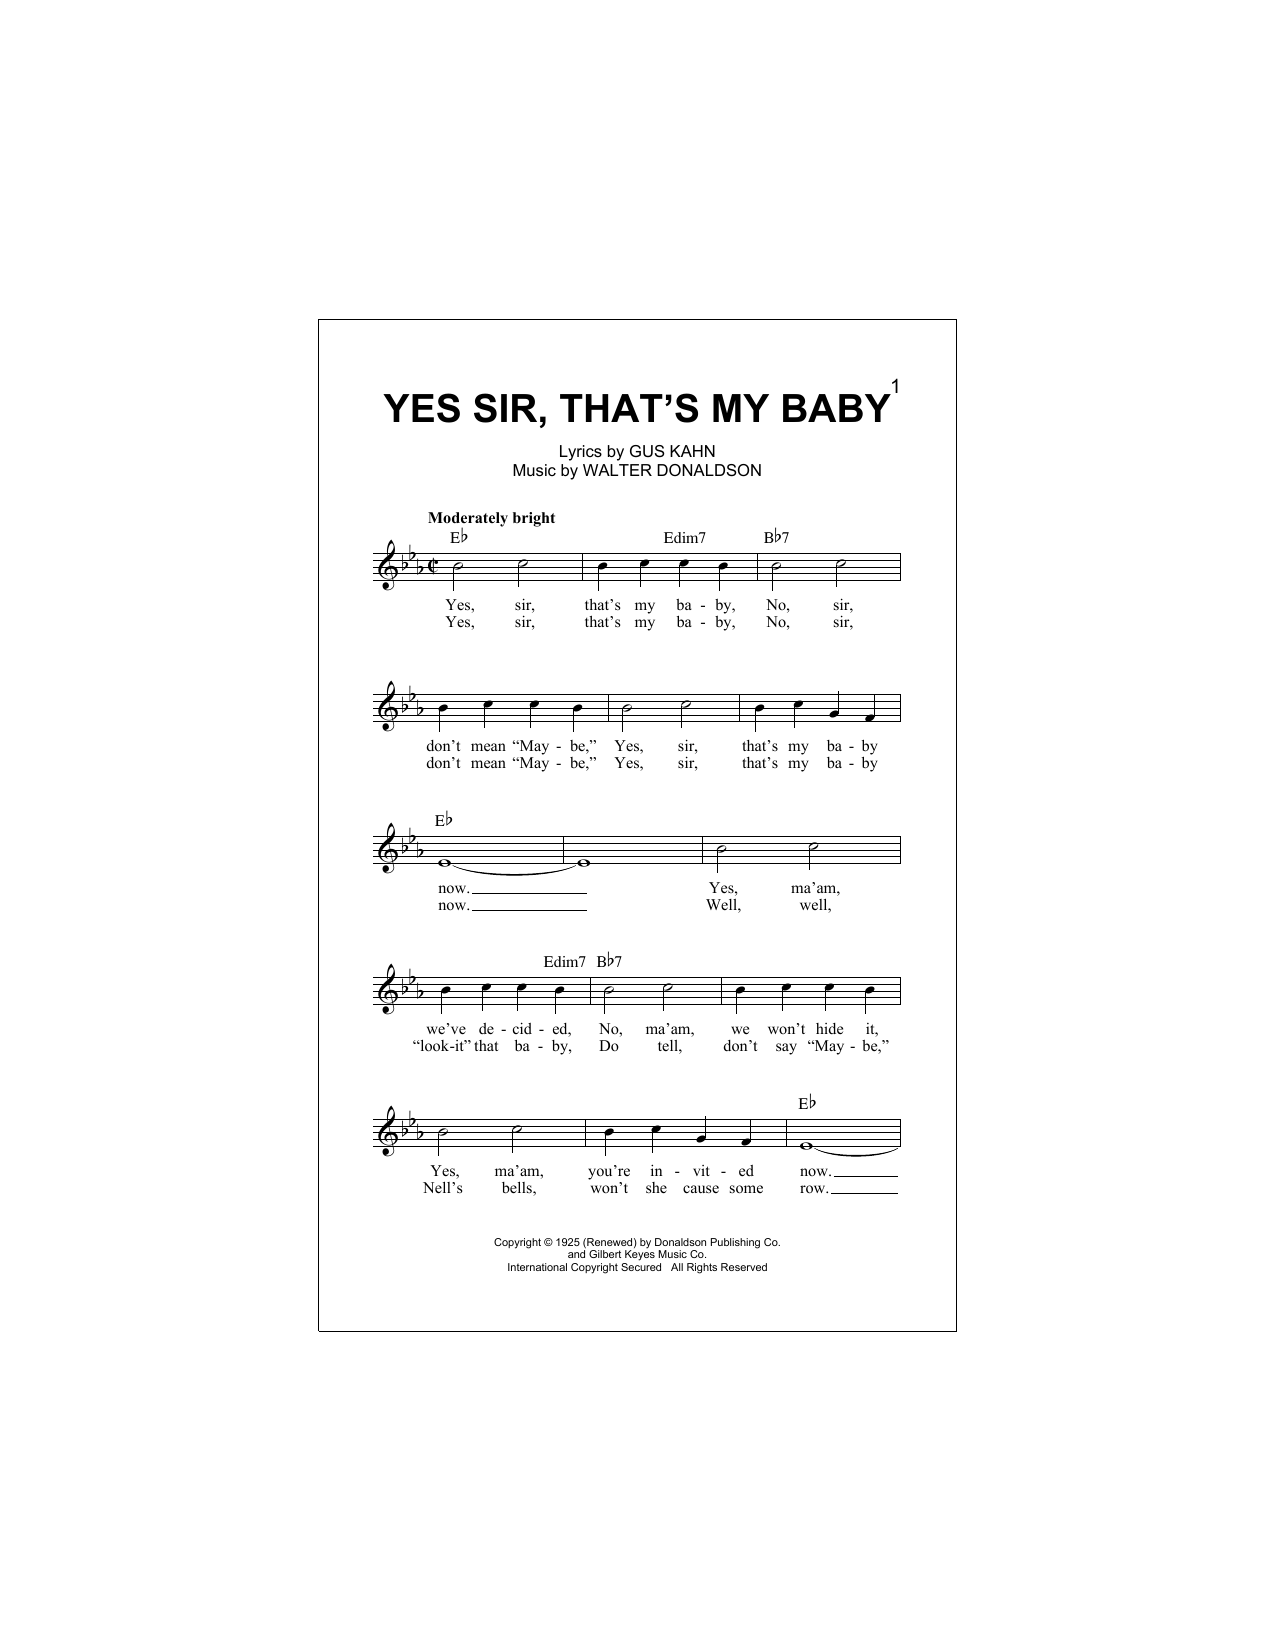 Yes Sir, That's My Baby Sheet Music